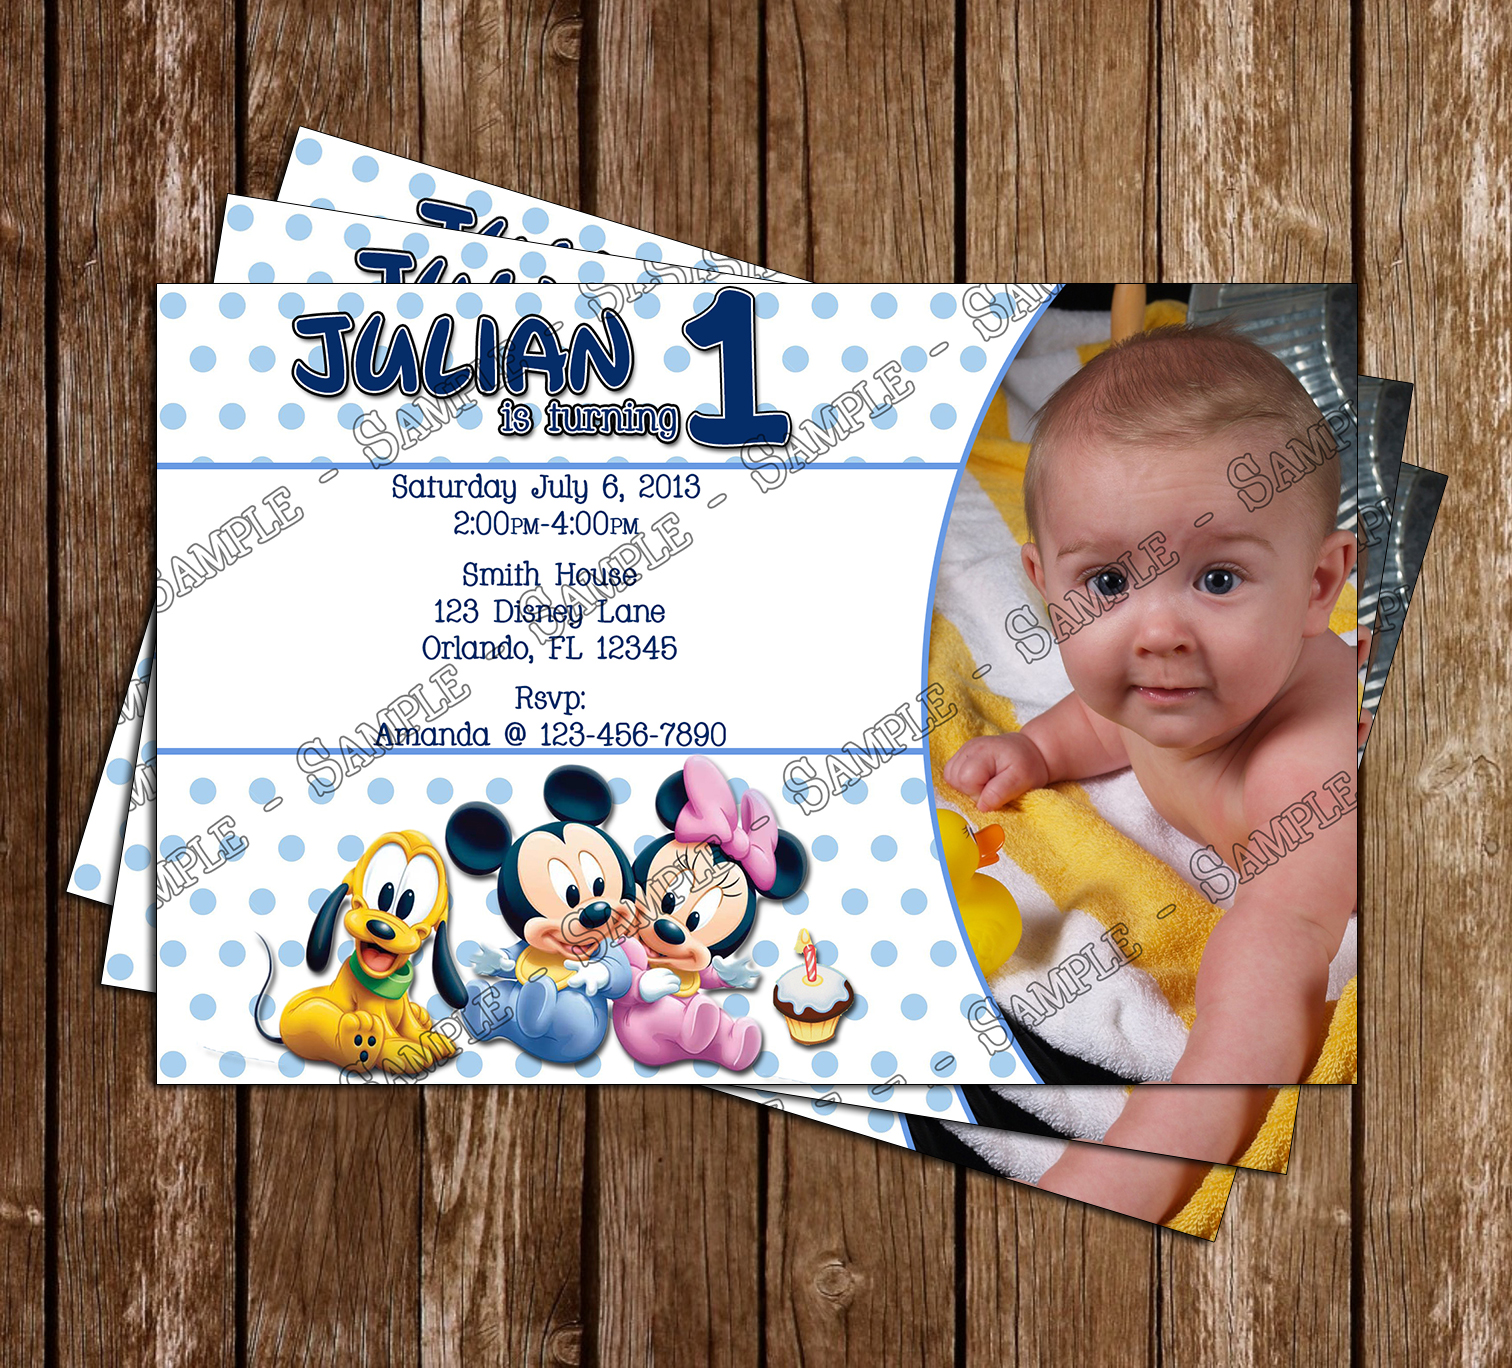 Novel concept designs disney baby mickey 1st birthday invitation disney baby mickey 1st birthday invitation and thank you card july 07 2013 stopboris Image collections